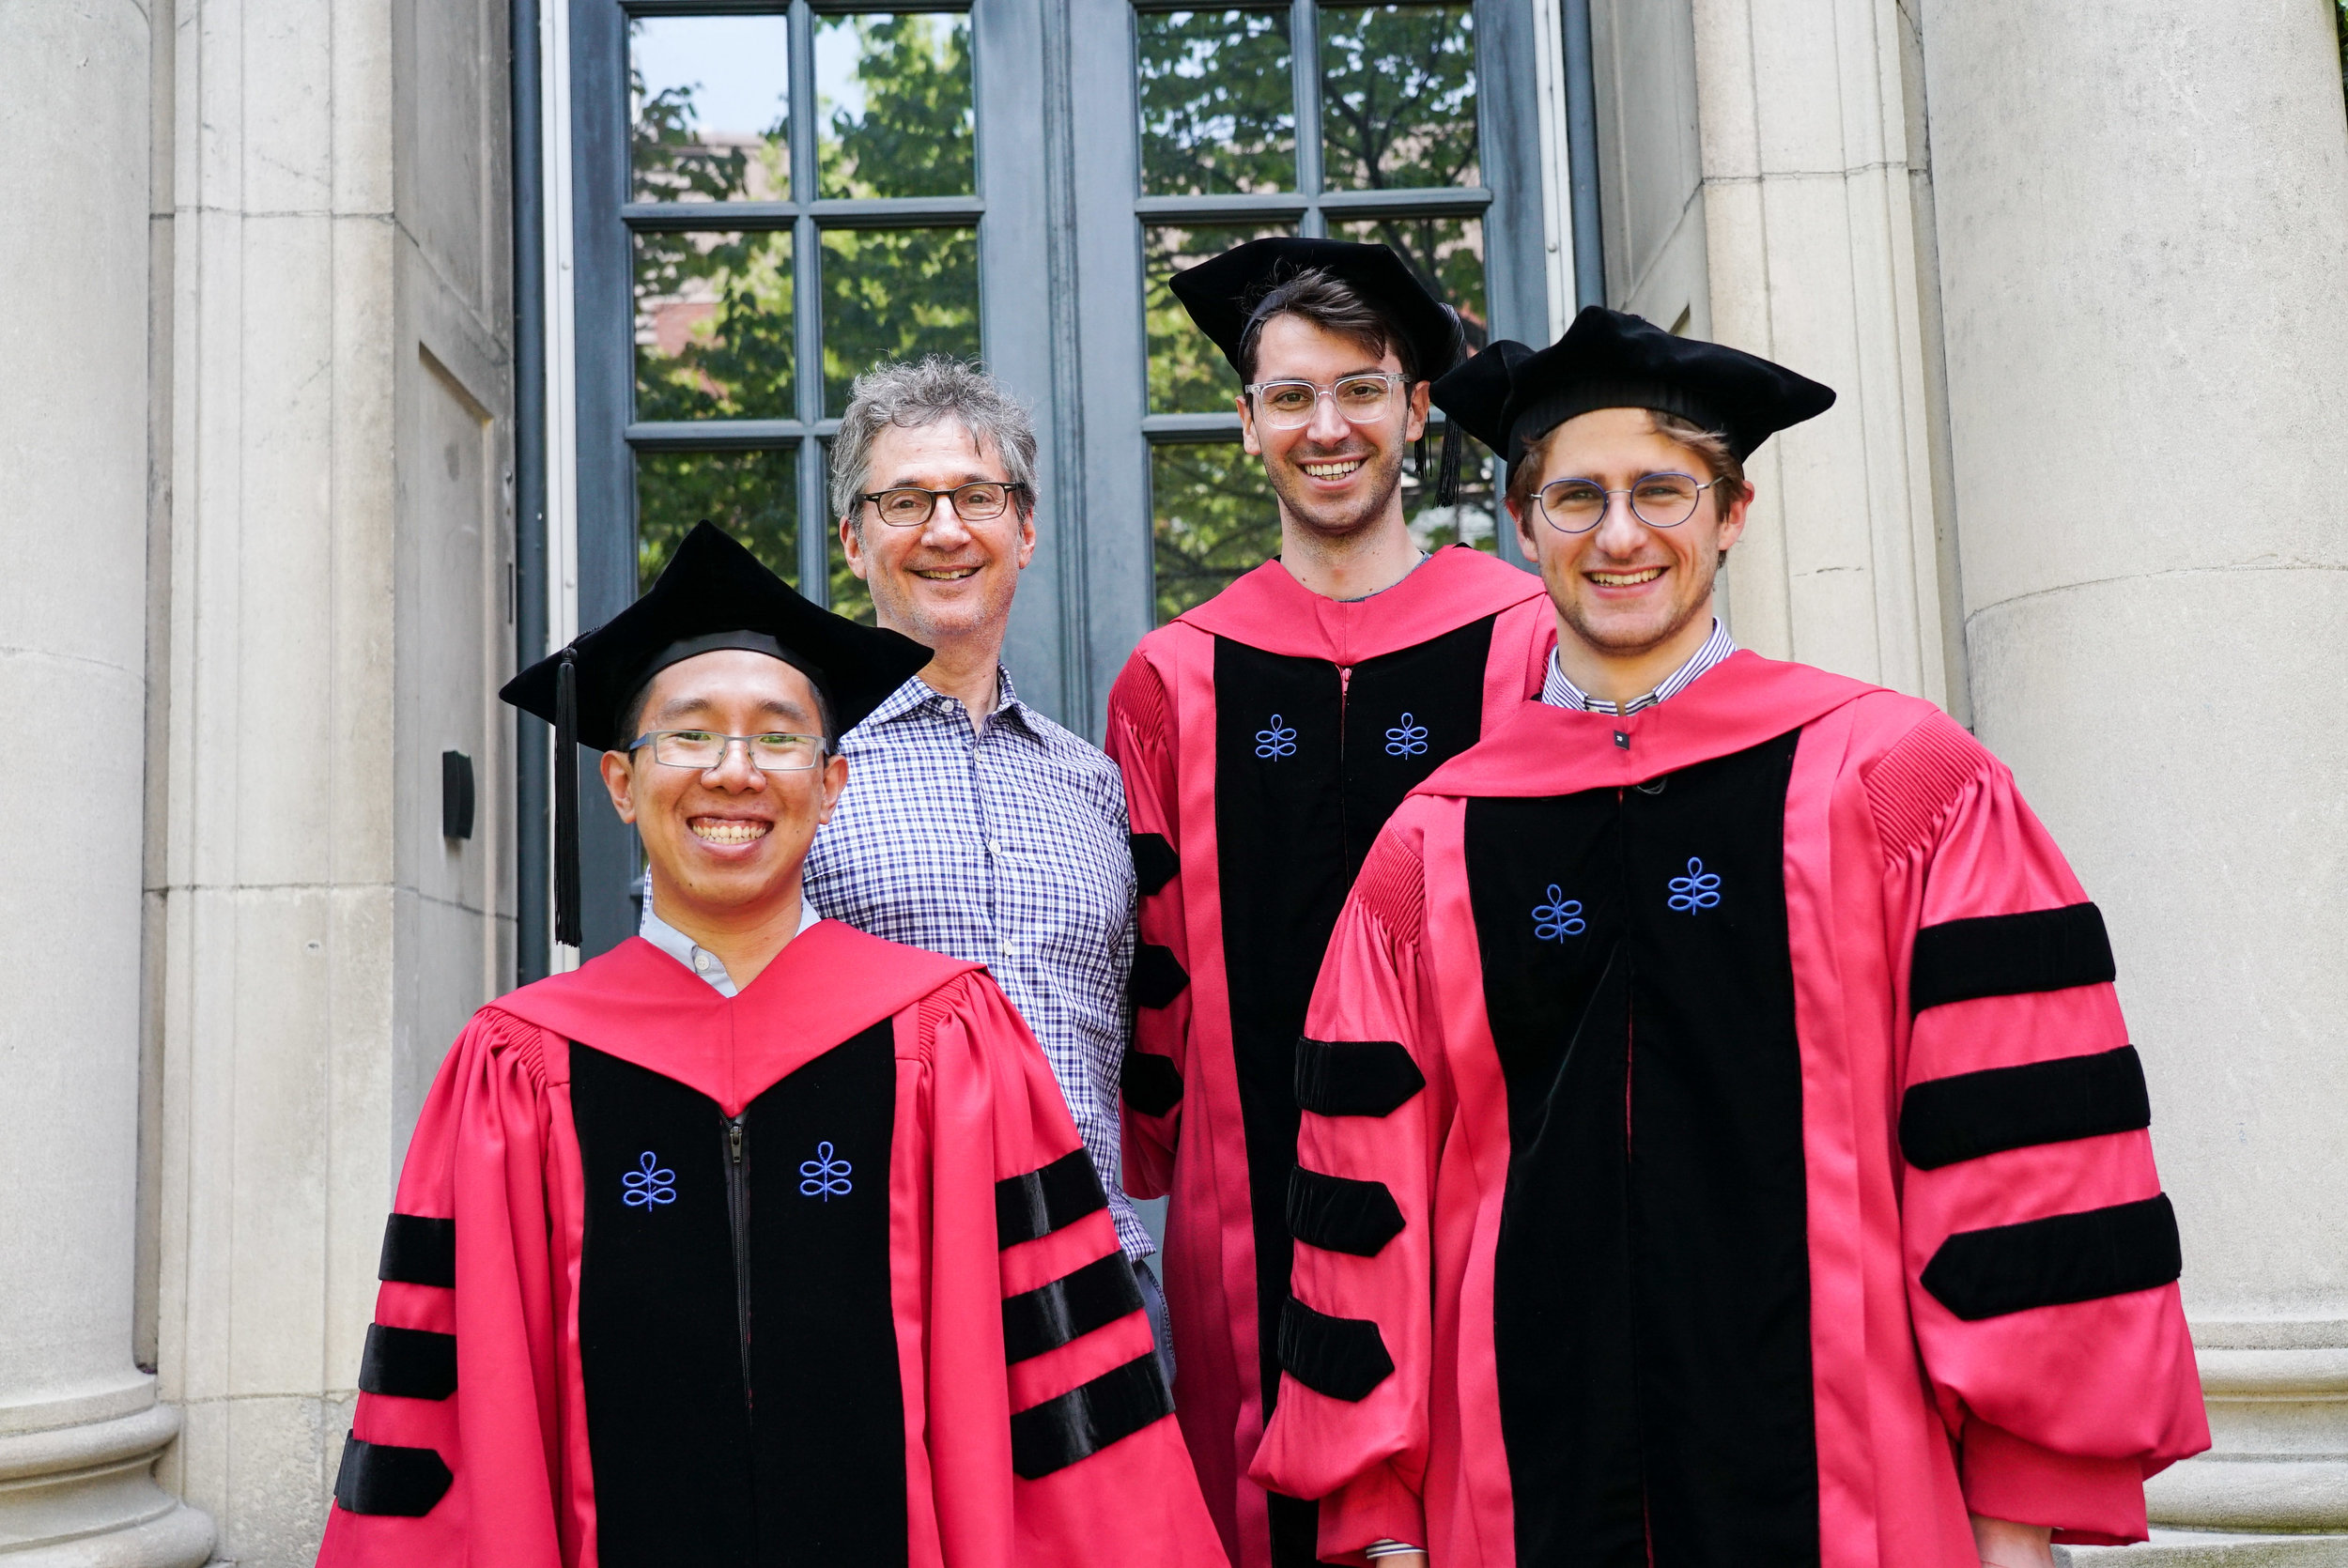 Congratulations to our recent graduates! - Six members of the Kahne lab have graduated during the 2018-2019 academic year. Congratulations to all!Recipients of the Doctor of PhilosophyEmma Nagy, Molecular and Cellular BiologyTristan Owens, Chemical BiologyFred Rubino, ChemistryVeerasak (Jeep) Srisuknimit, ChemistryGe Zhang, ChemistryRecipient of the Bachelor of ArtsSerena Hoost, Molecular and Cellular Biology